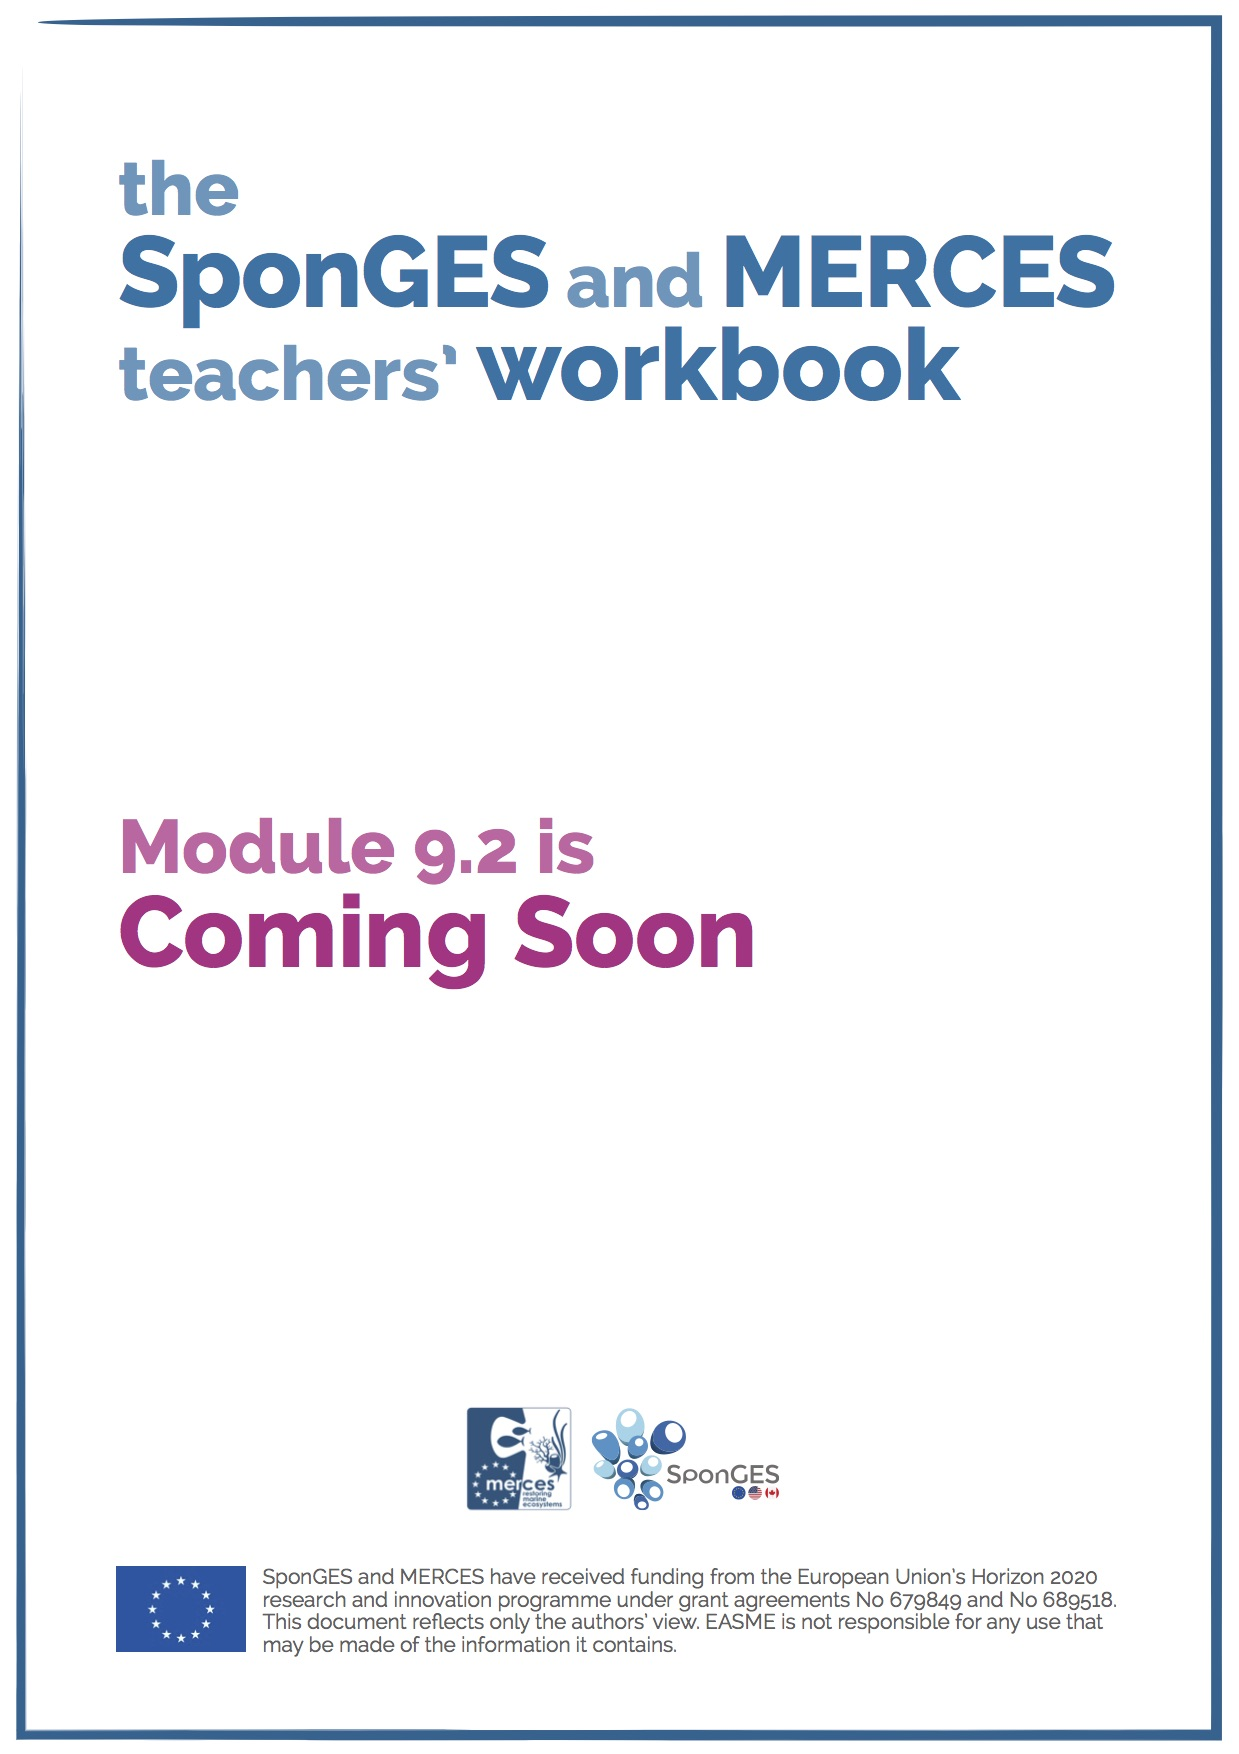 Module 9.2 of the SponGES and MERCES teachers' workbook